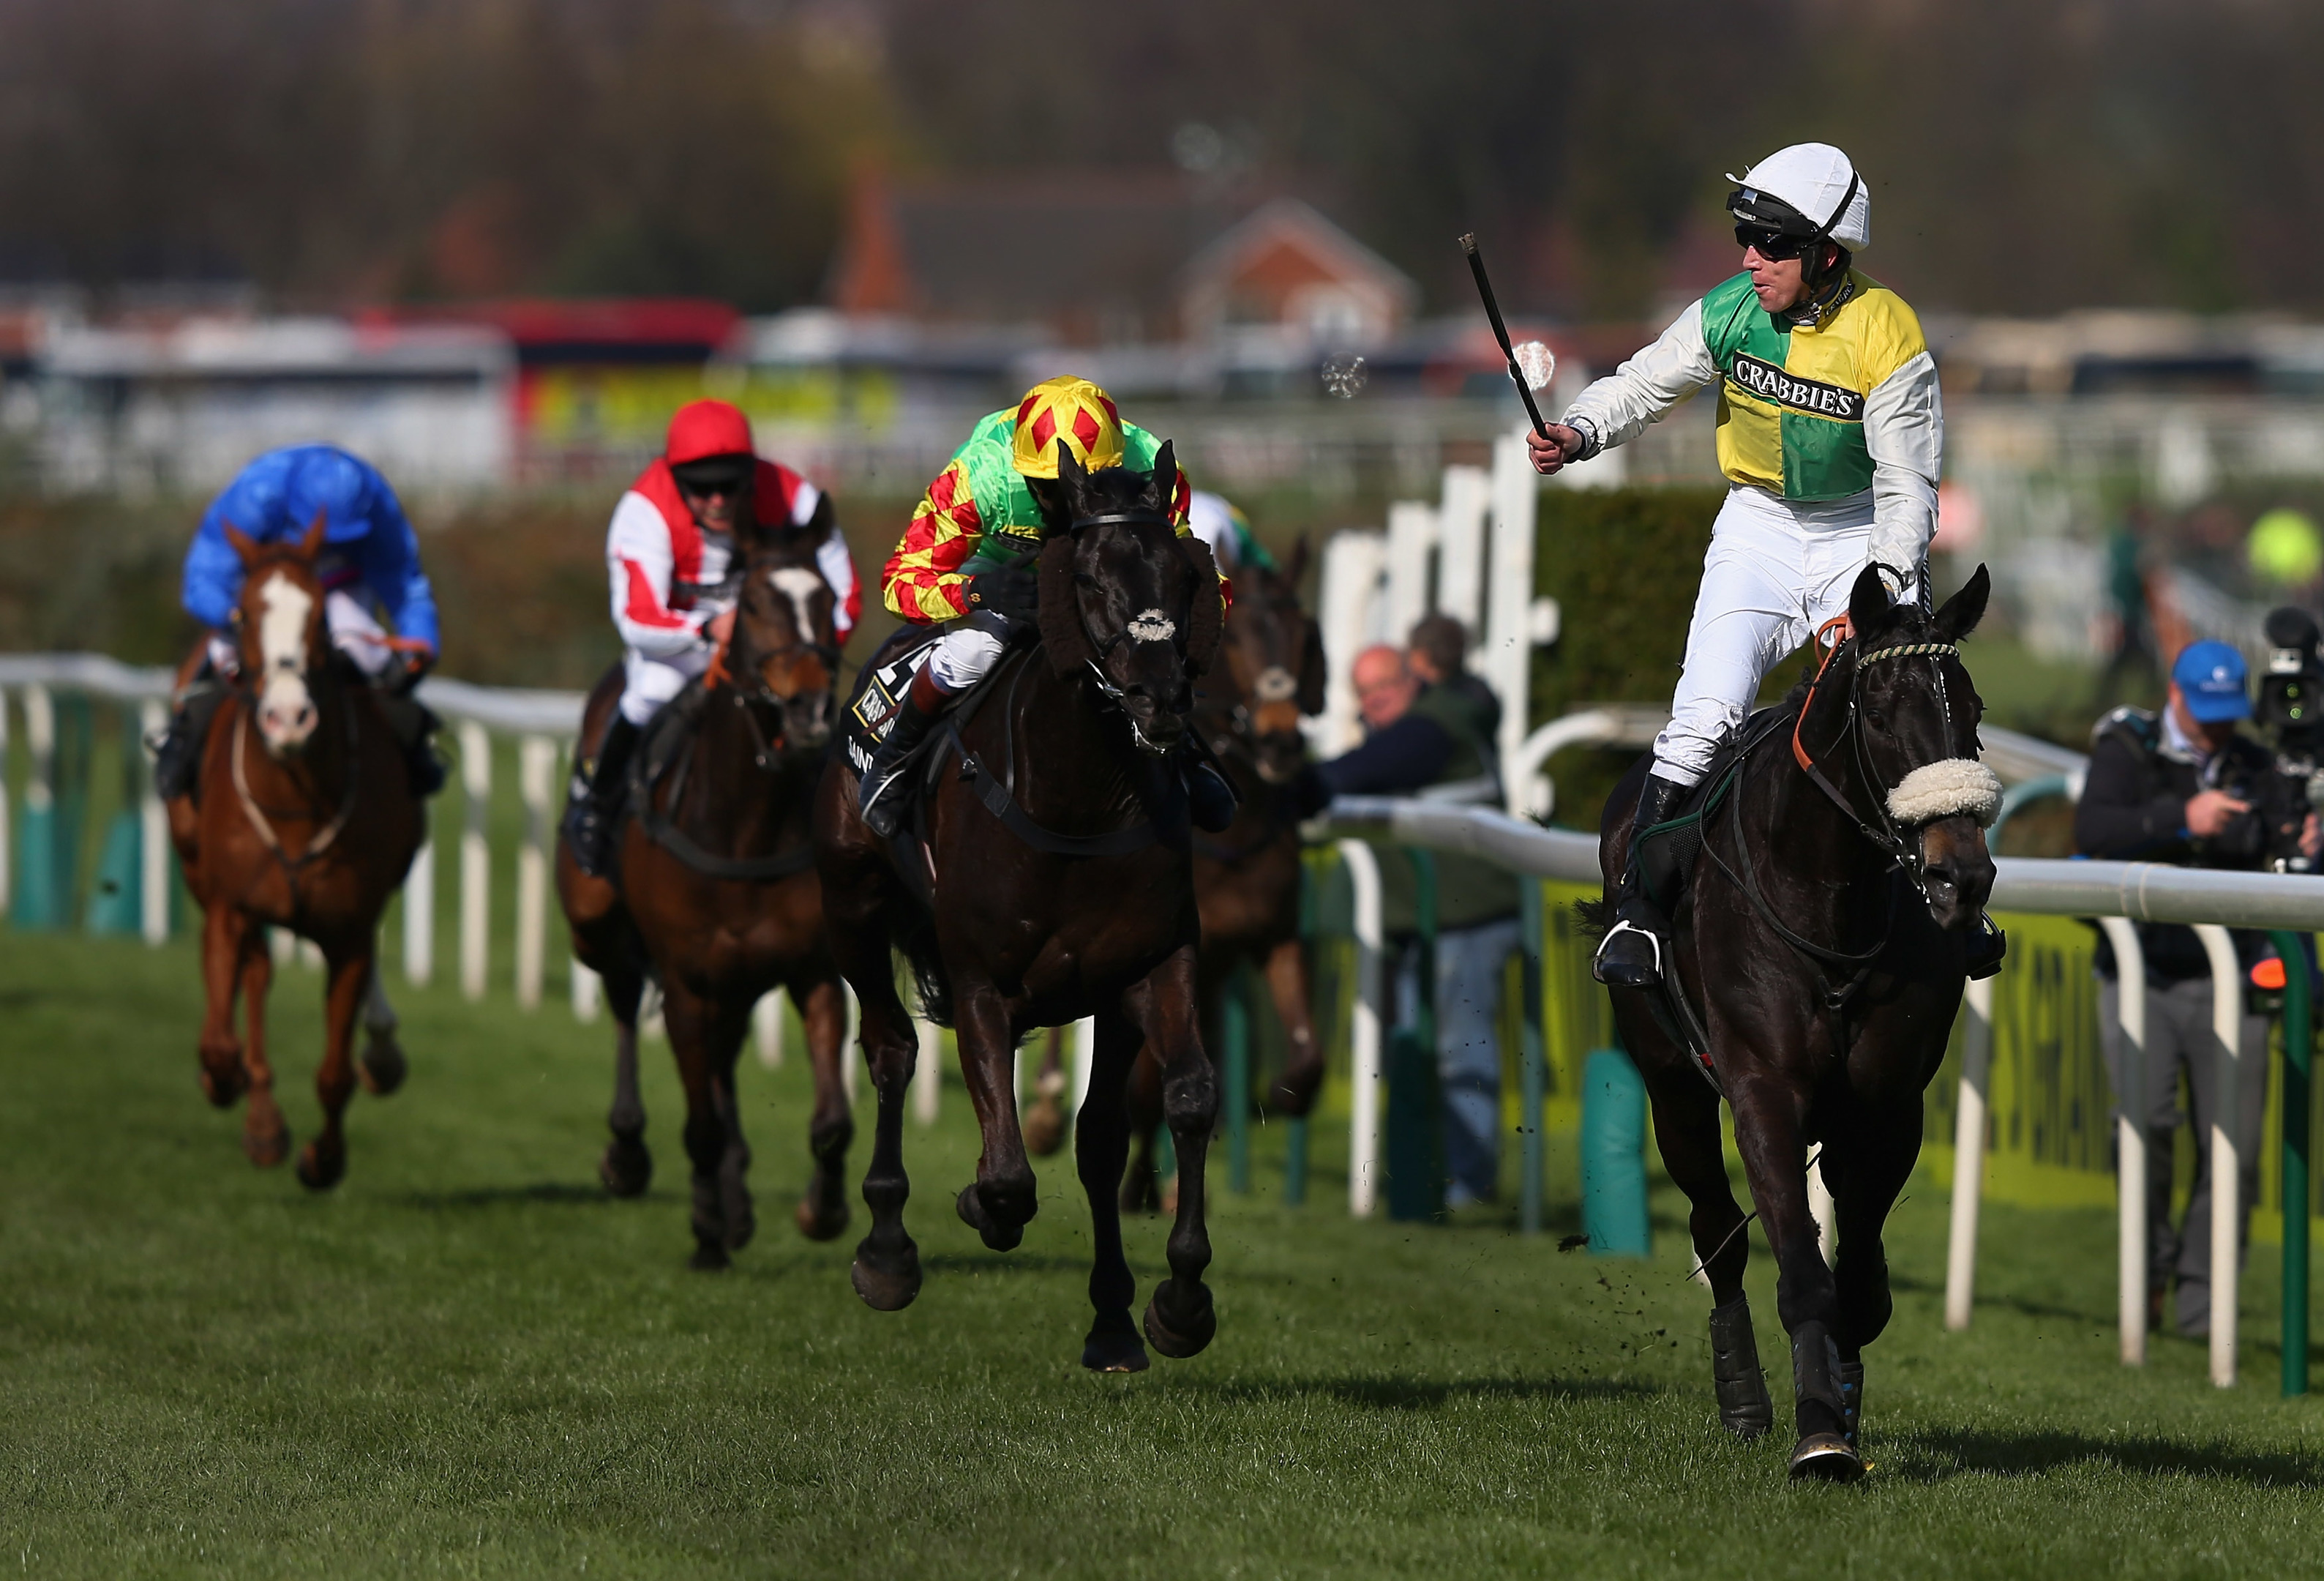 The grand national betting back and lay in cricket betting in india